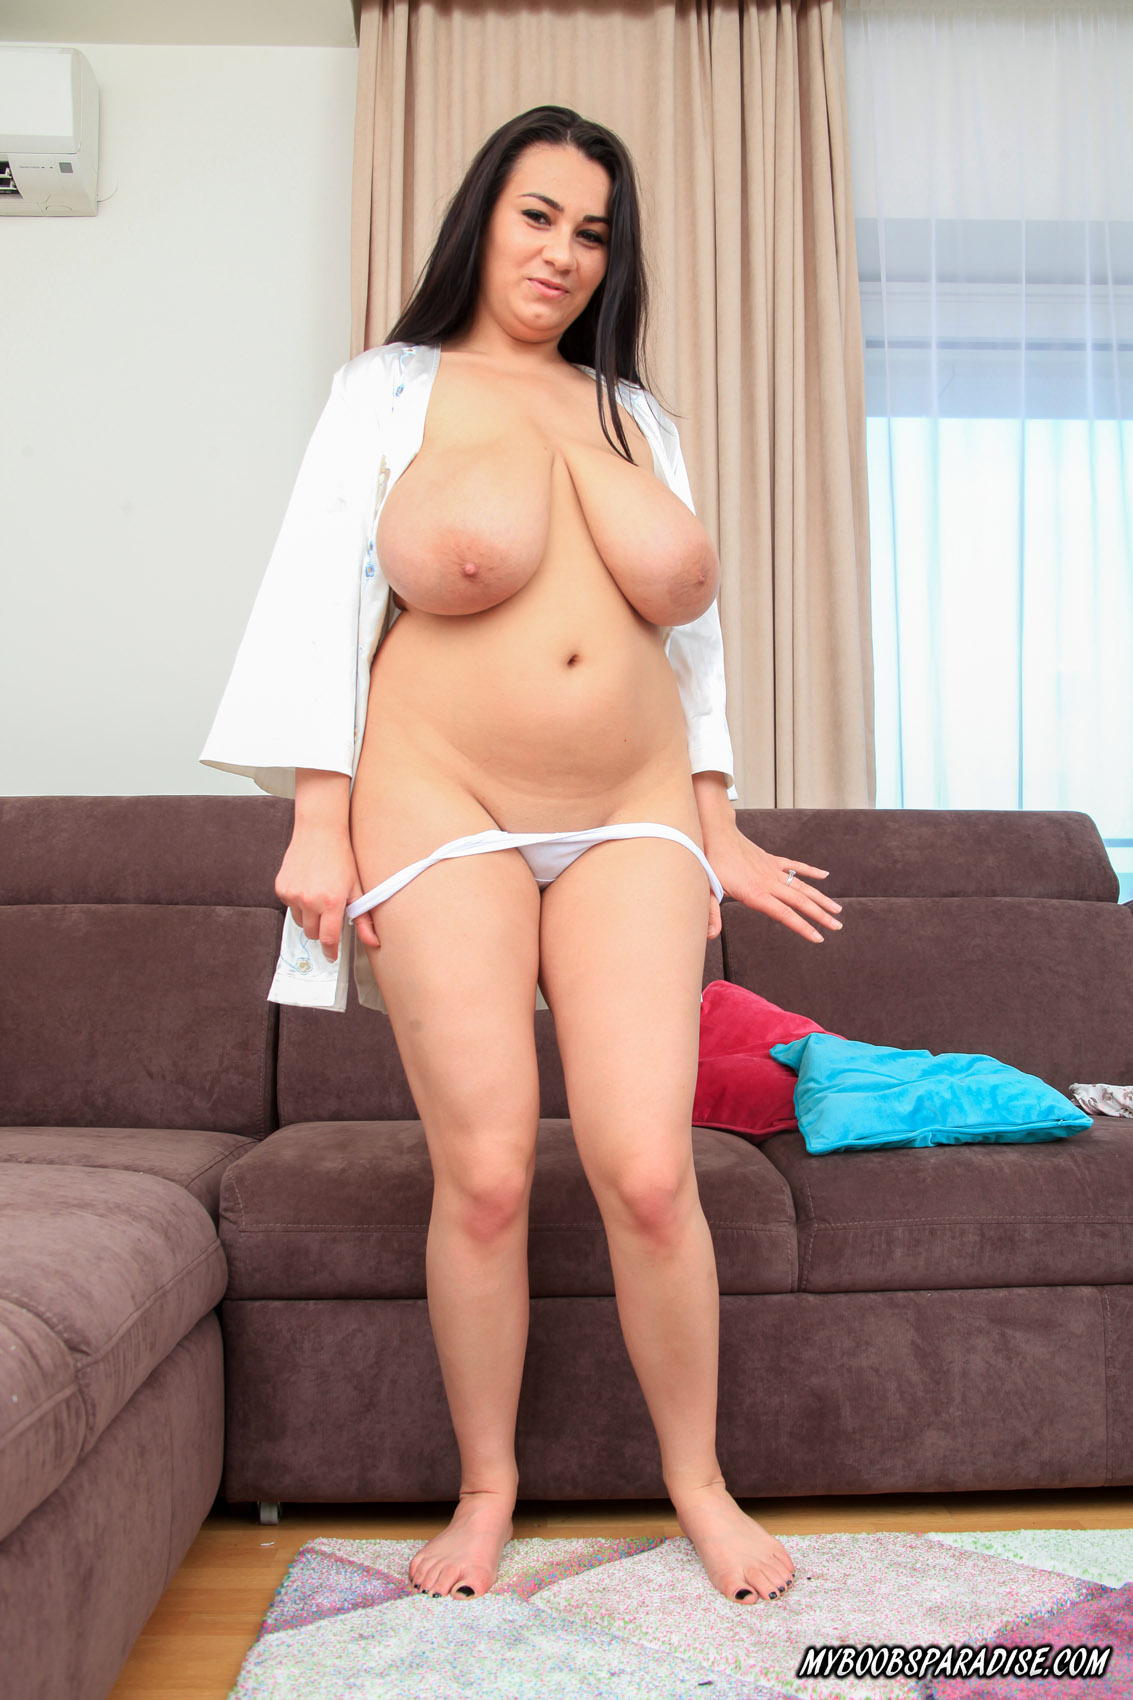 7 milf cherry being sexy in lingerie - 3 part 6